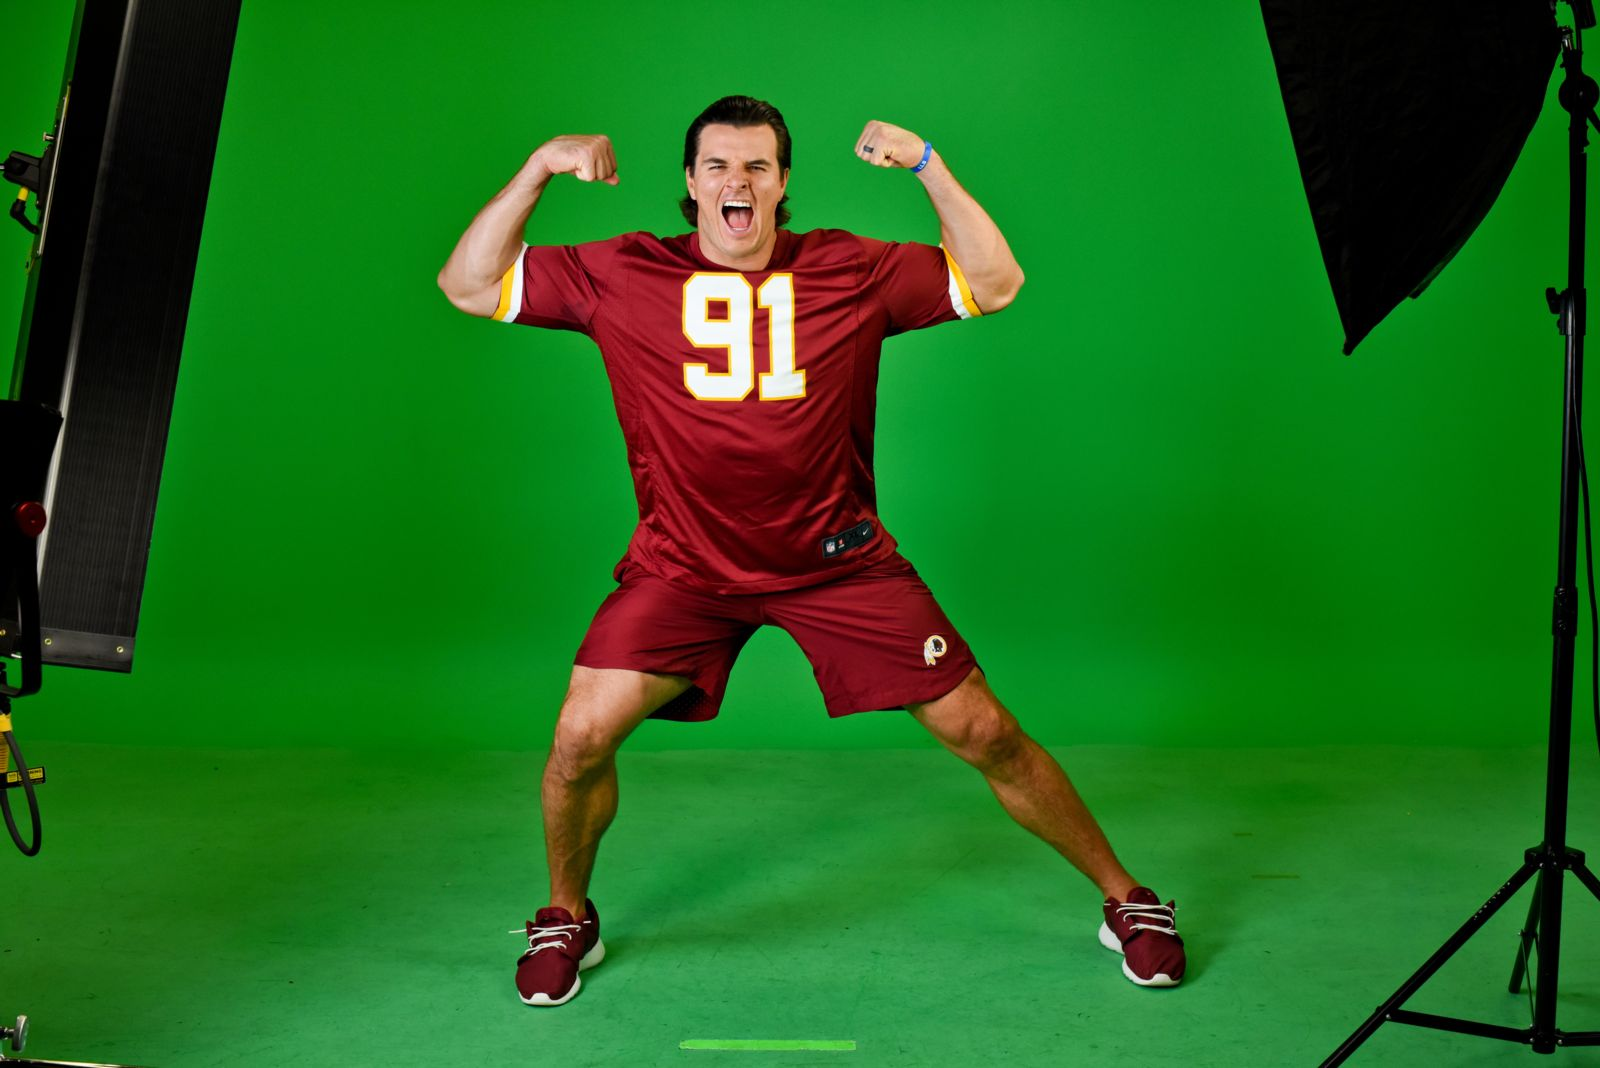 Ryan Kerrigan at Virginia green screen studio